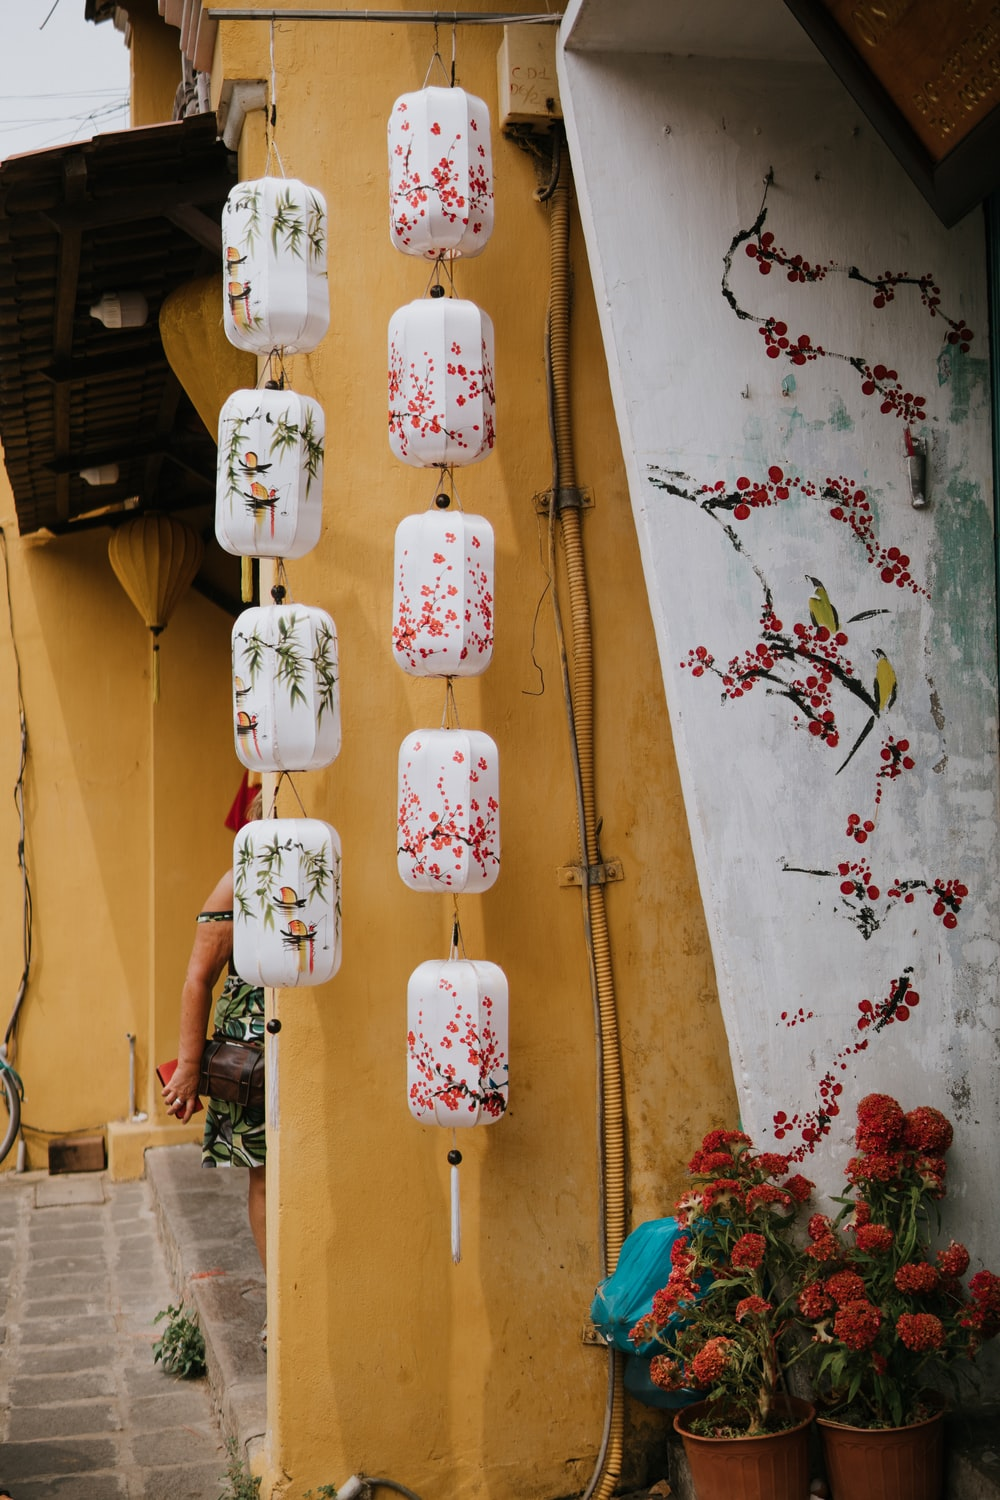 flowers near wall and hanging decor